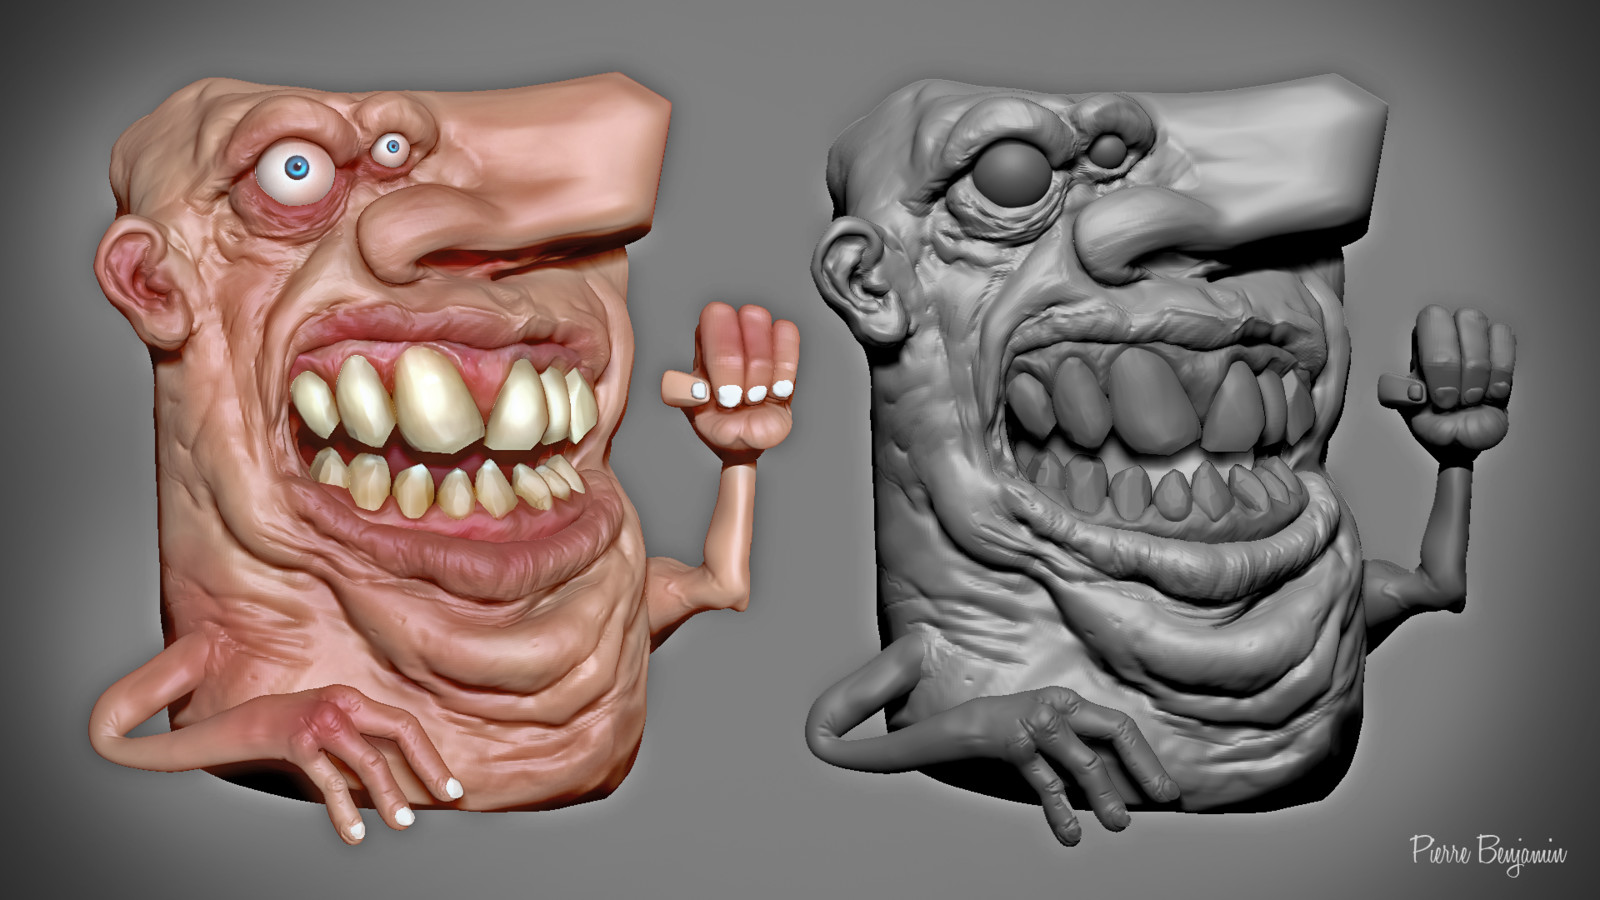 3D ZBrush sculpt based on an original concept by Numero 6 - fan Art